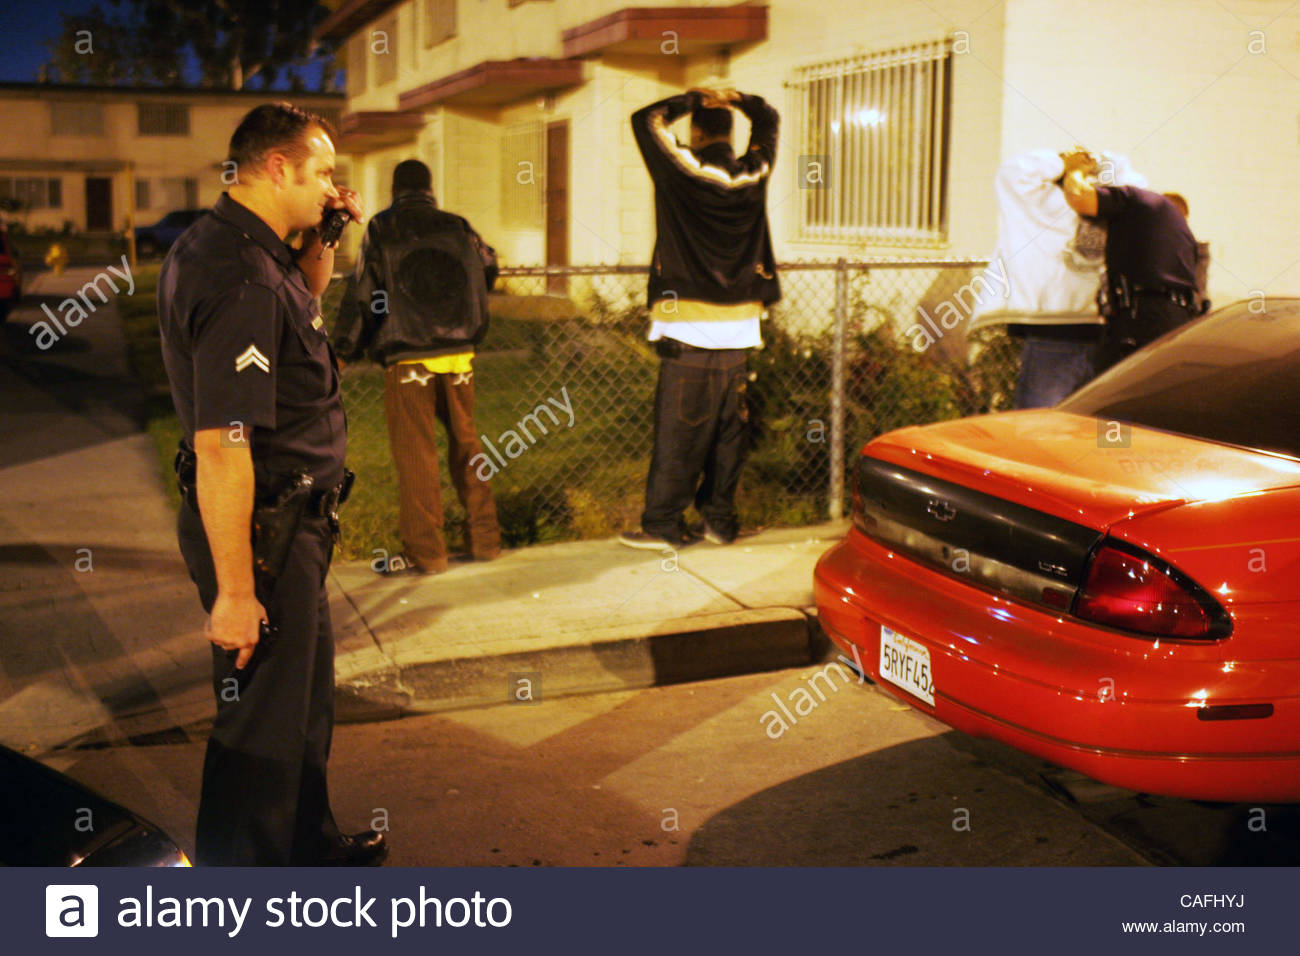 Los Angeles Police officer Tim Pearce keeps an eye on gang members in the  Jordan Downs Housing Projects in South Los Angeles Tuesday December 5, 2006.